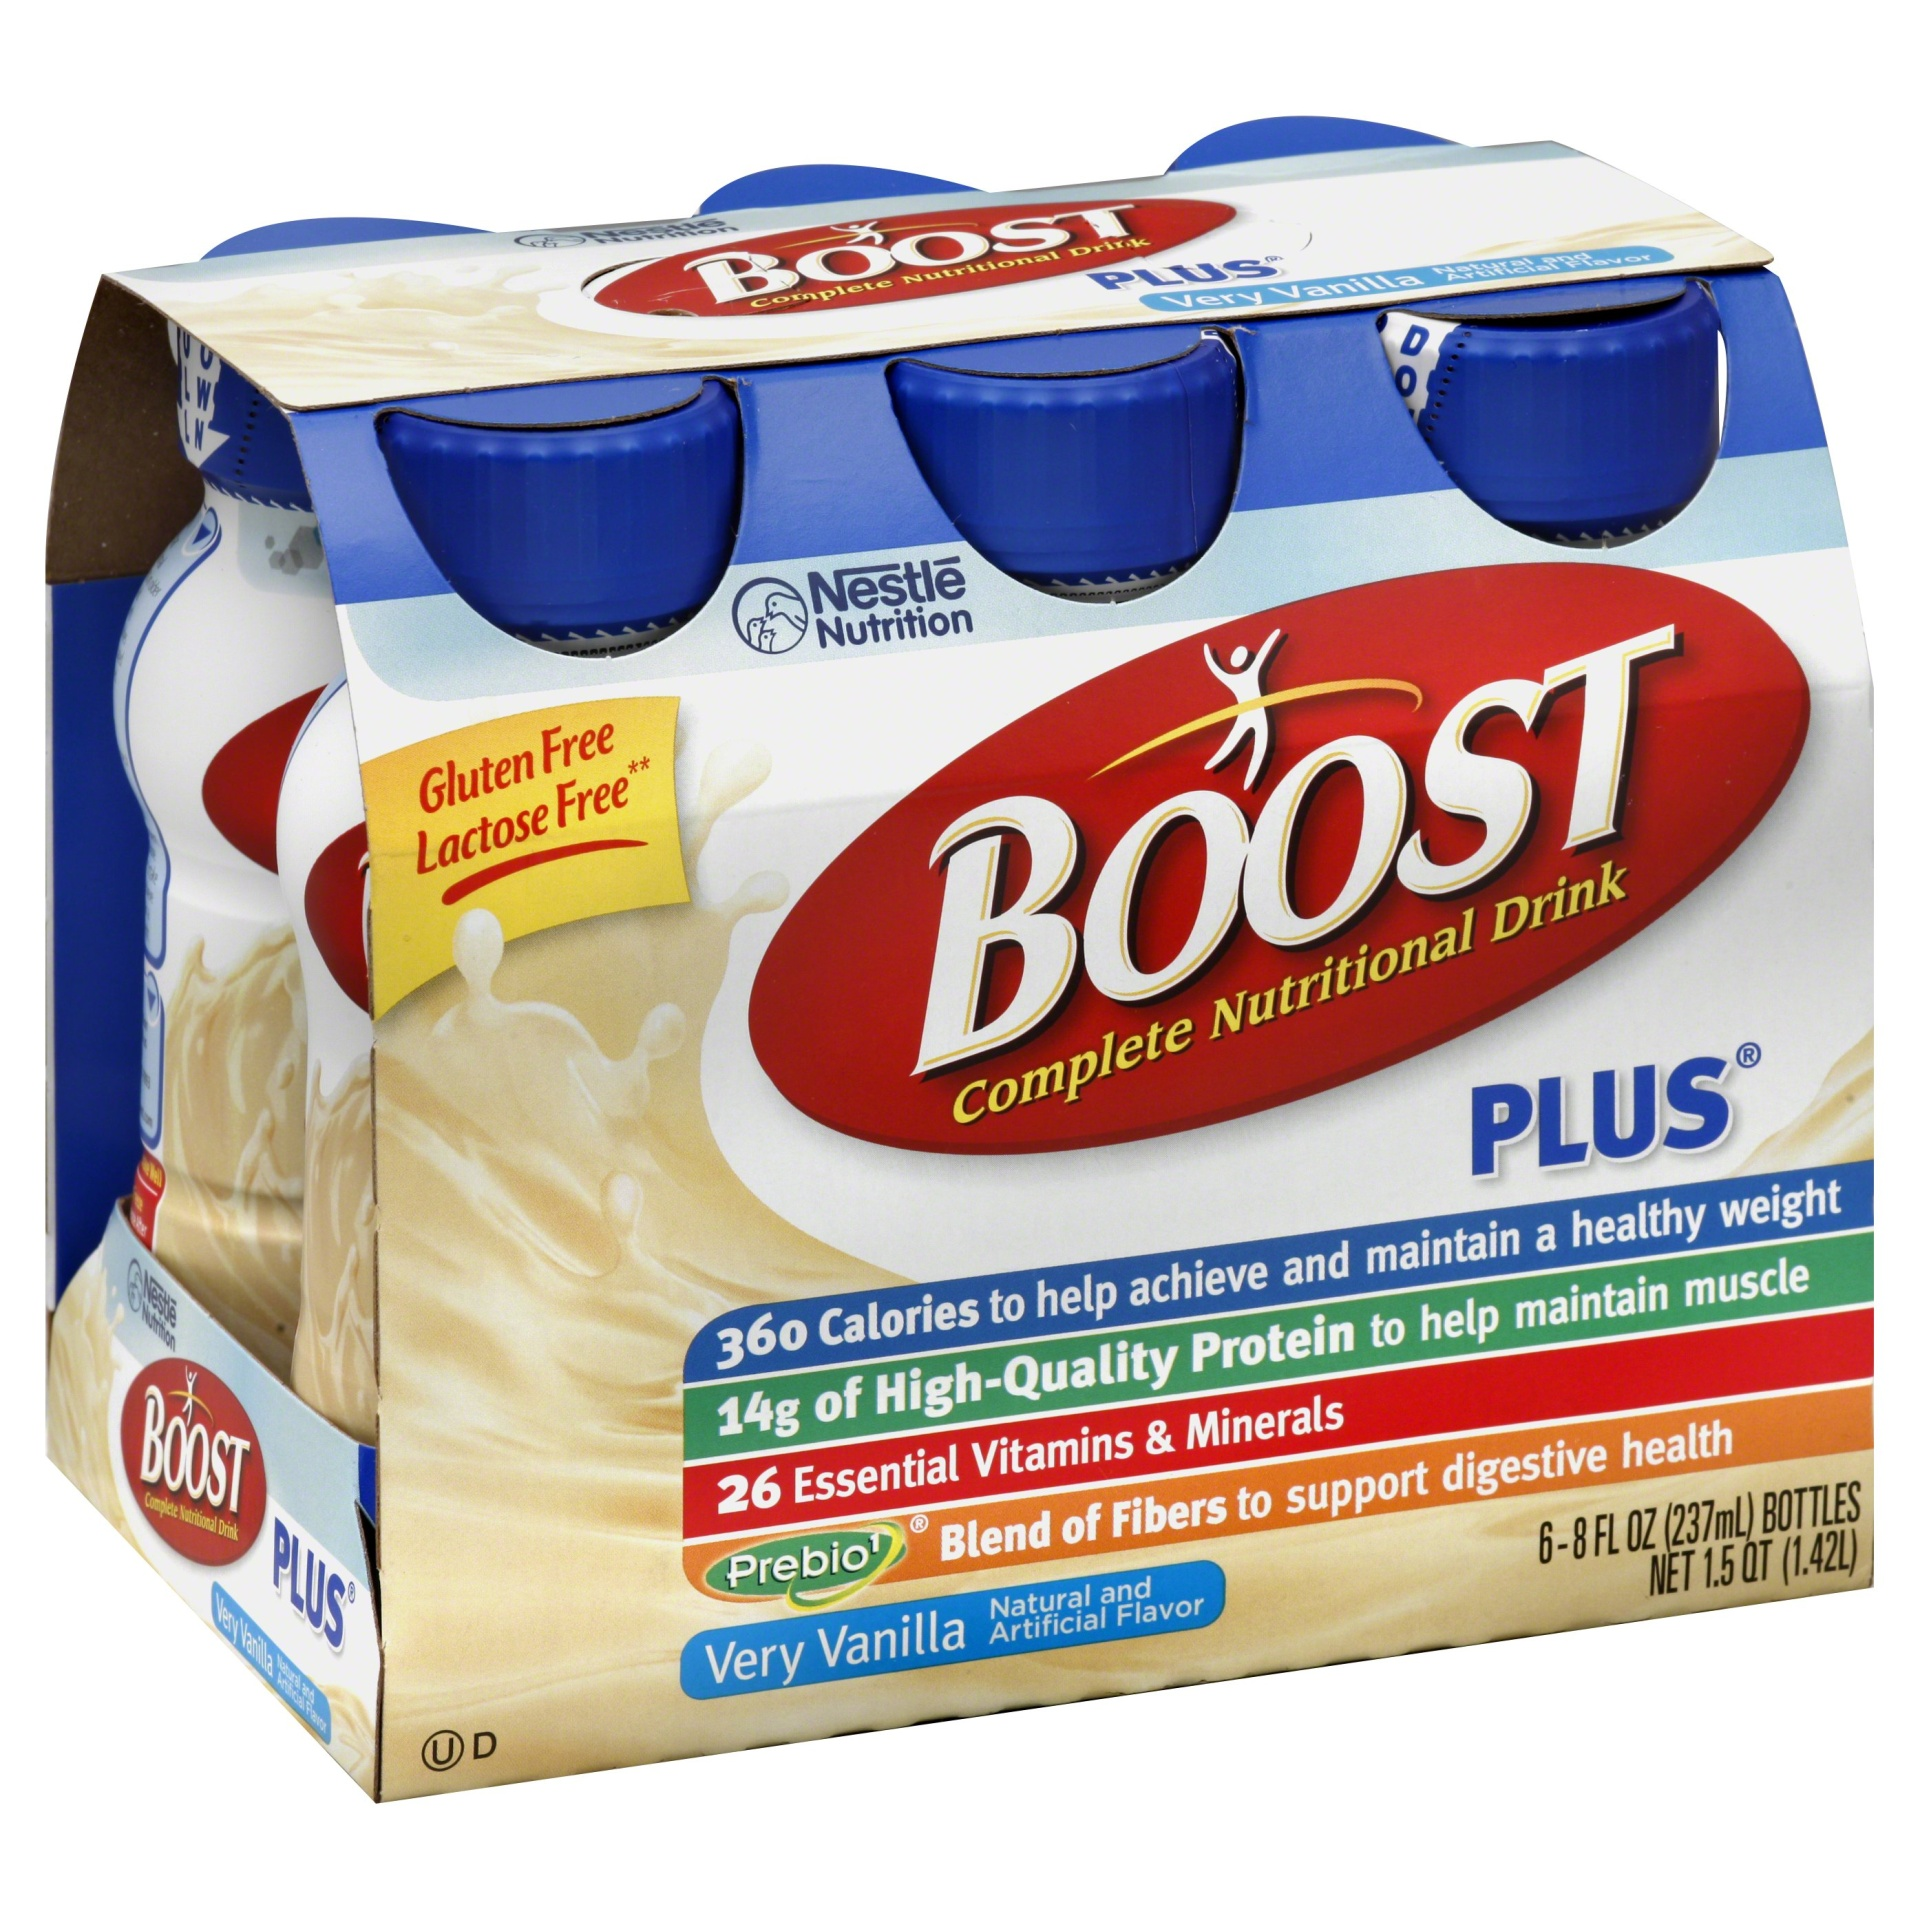 slide 1 of 9, Boost  Plus Complete Nutritional Drink - Vanilla,